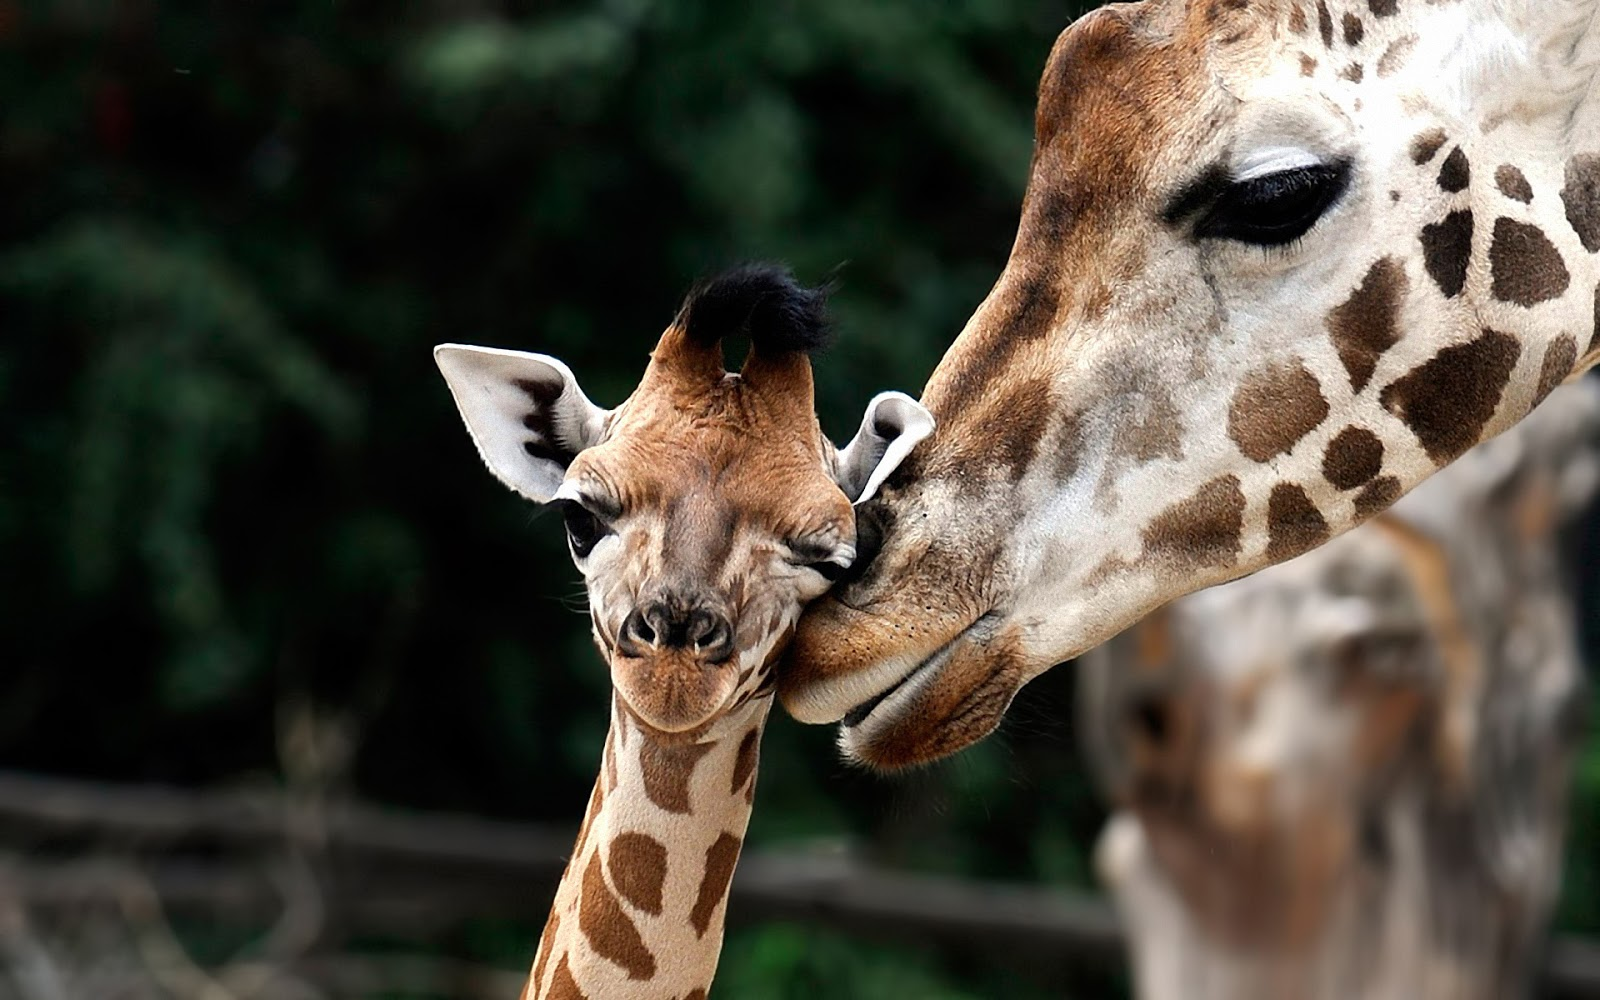 Cute wallpaper of giraffes HD Animals Wallpapers 1600x1000